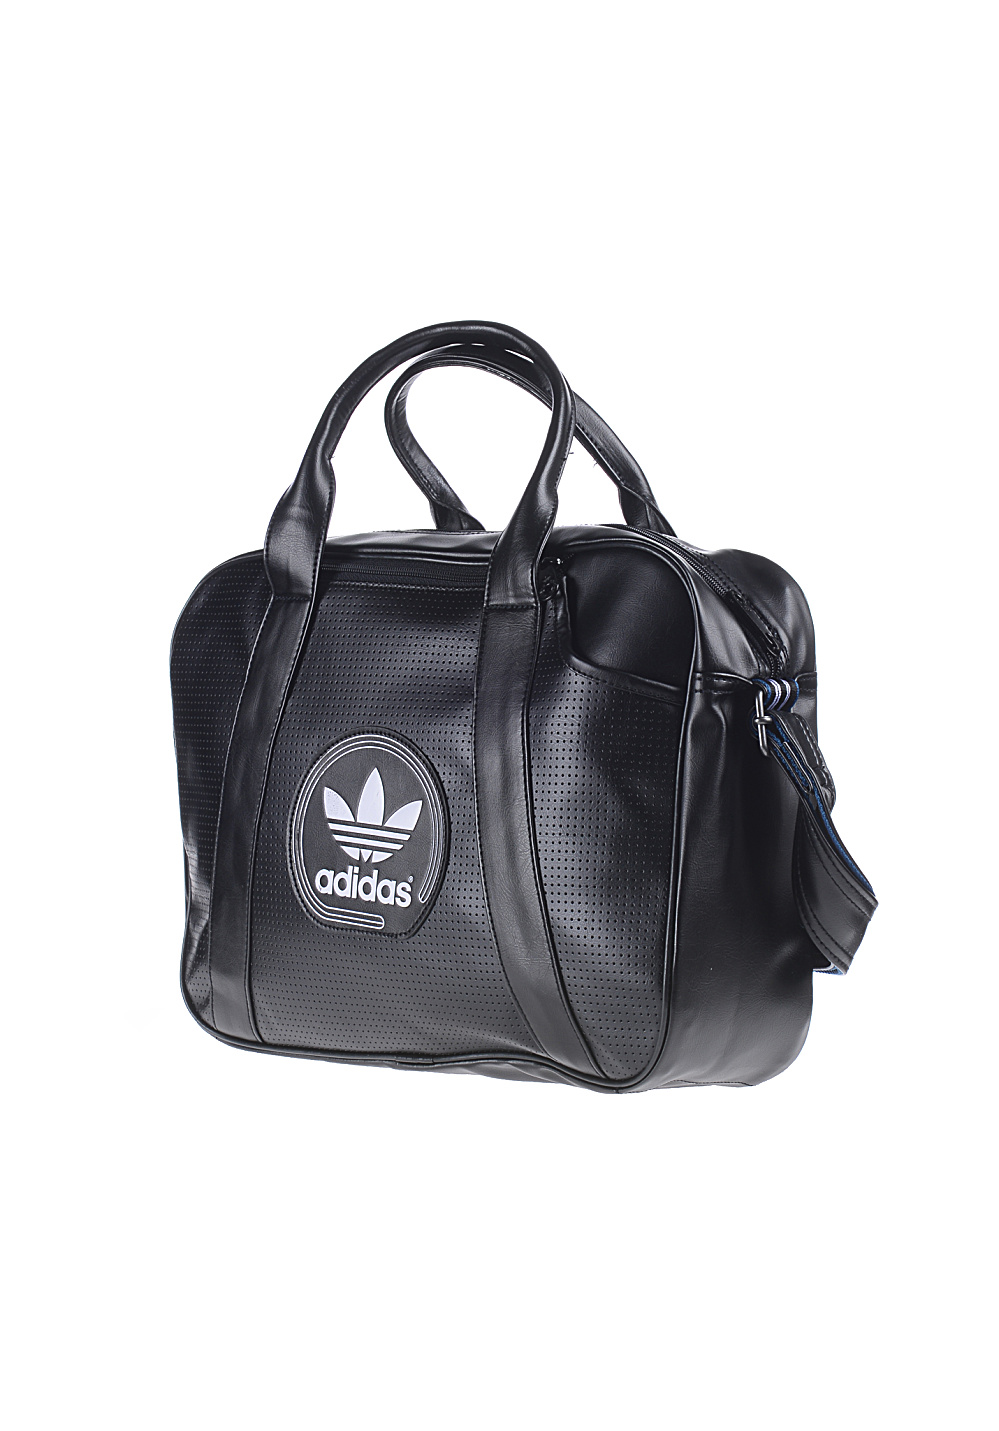 273eff92f7b0 Next. This product is currently out of stock. ADIDAS ORIGINALS. Airliner  Perf - Messenger Bag